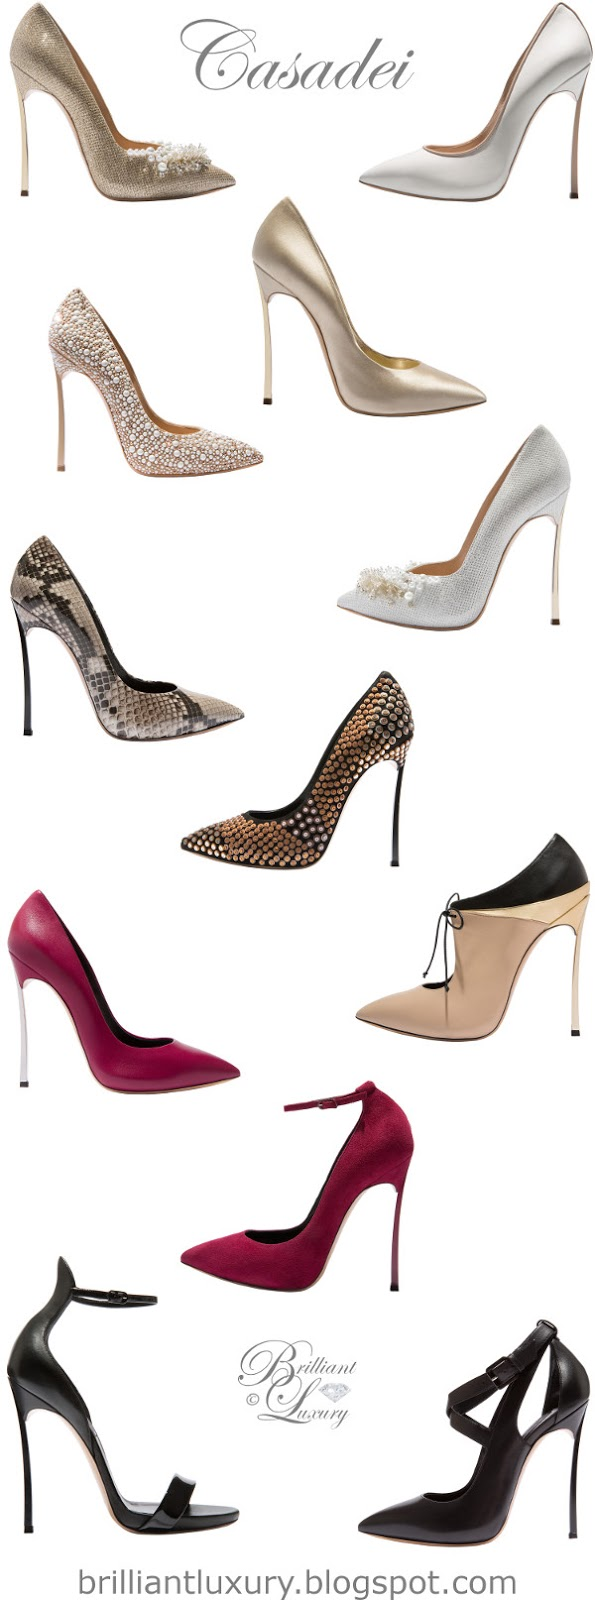 Brilliant Luxury ♦ Fall in ~ Casadei Blade pumps